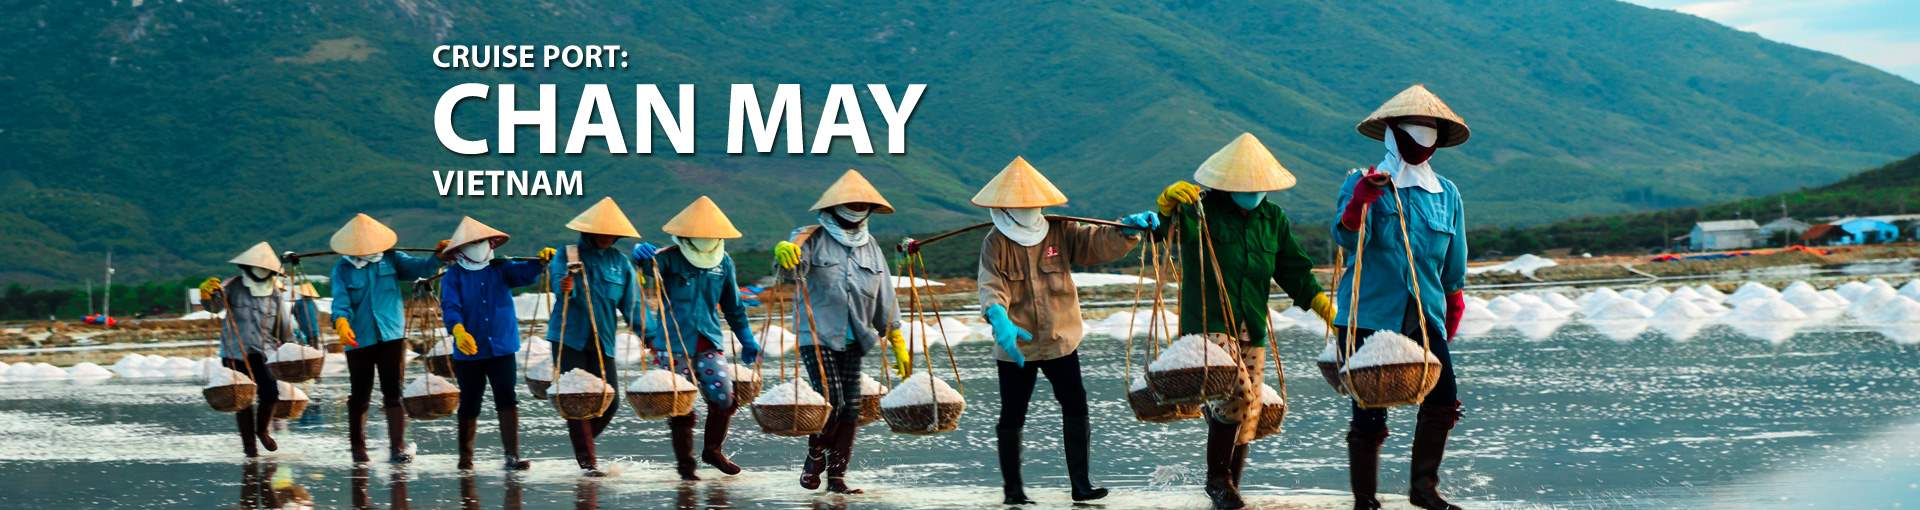 Chan May Vietnam Cruise Port 2018 And 2019 Cruises To